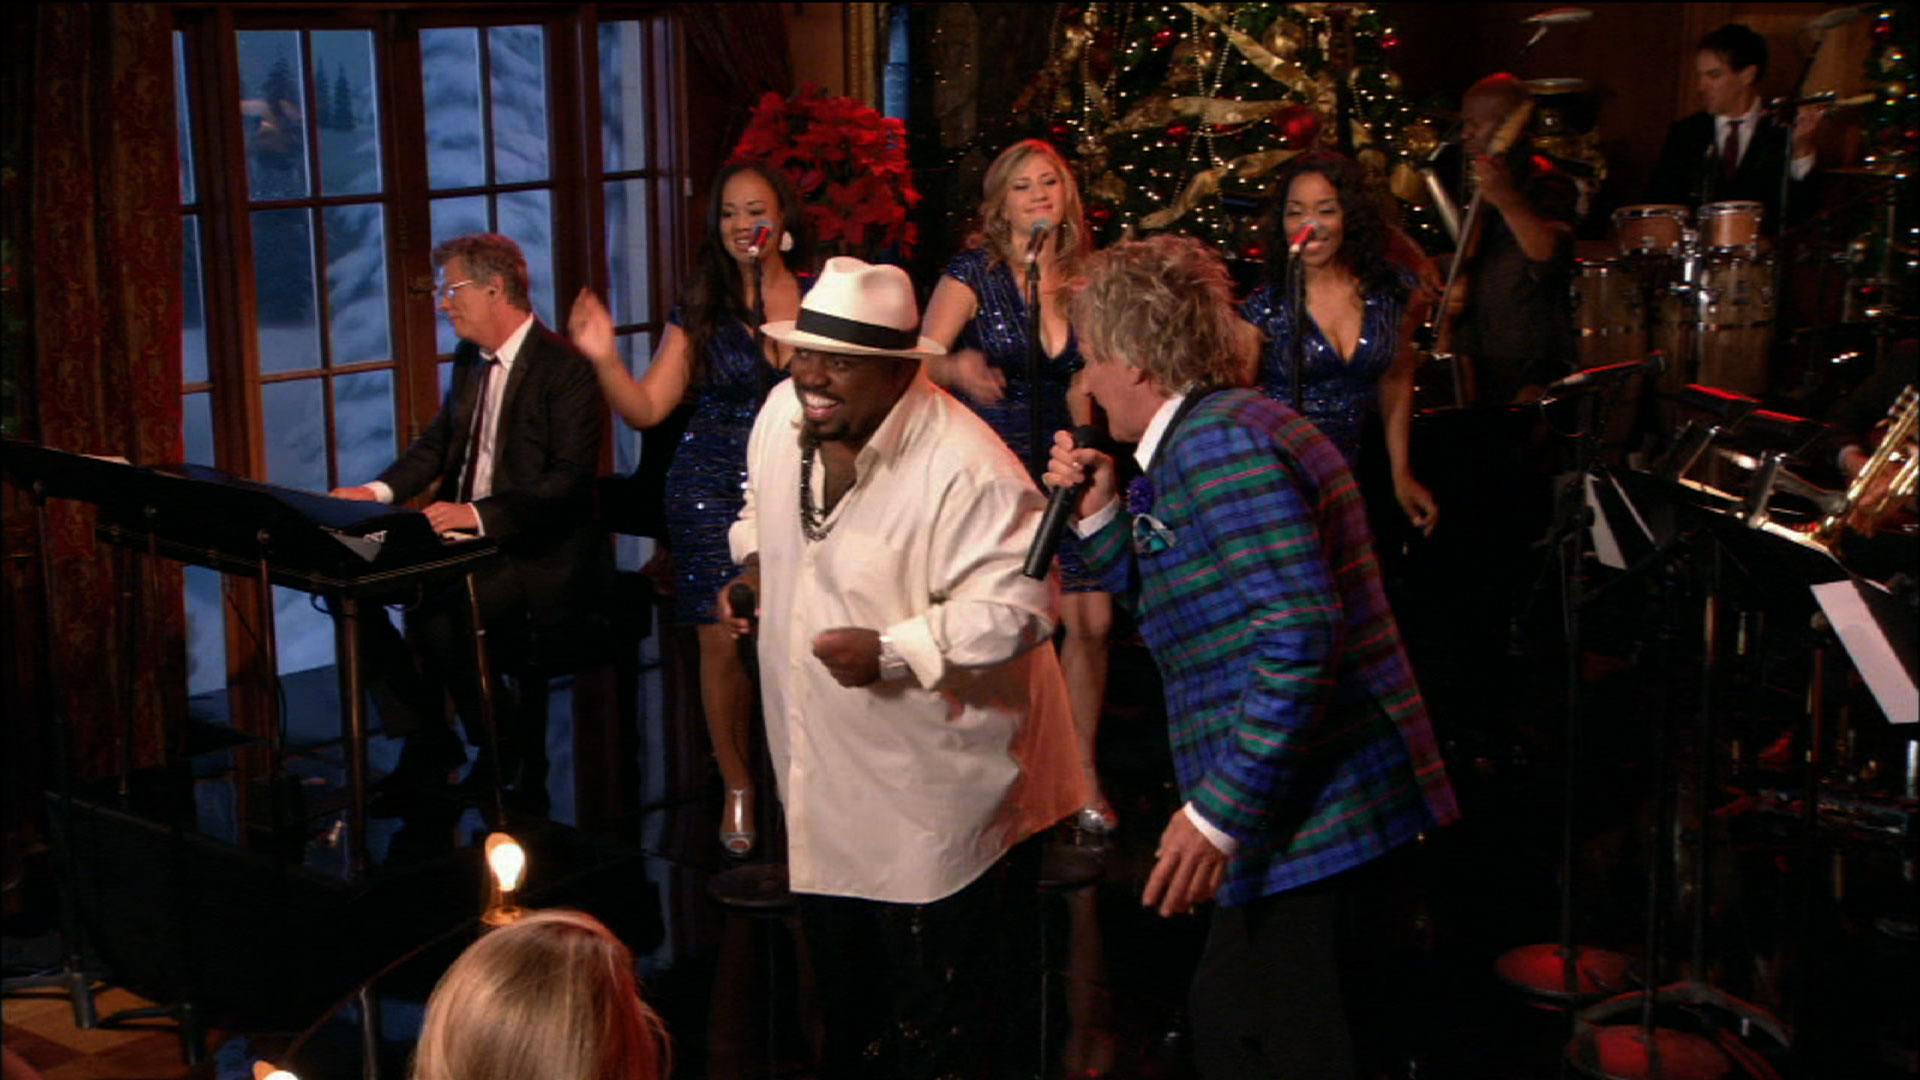 Rod Stewart: Merry Christmas, Baby | Cee Lo Green and Rod Stewart ...